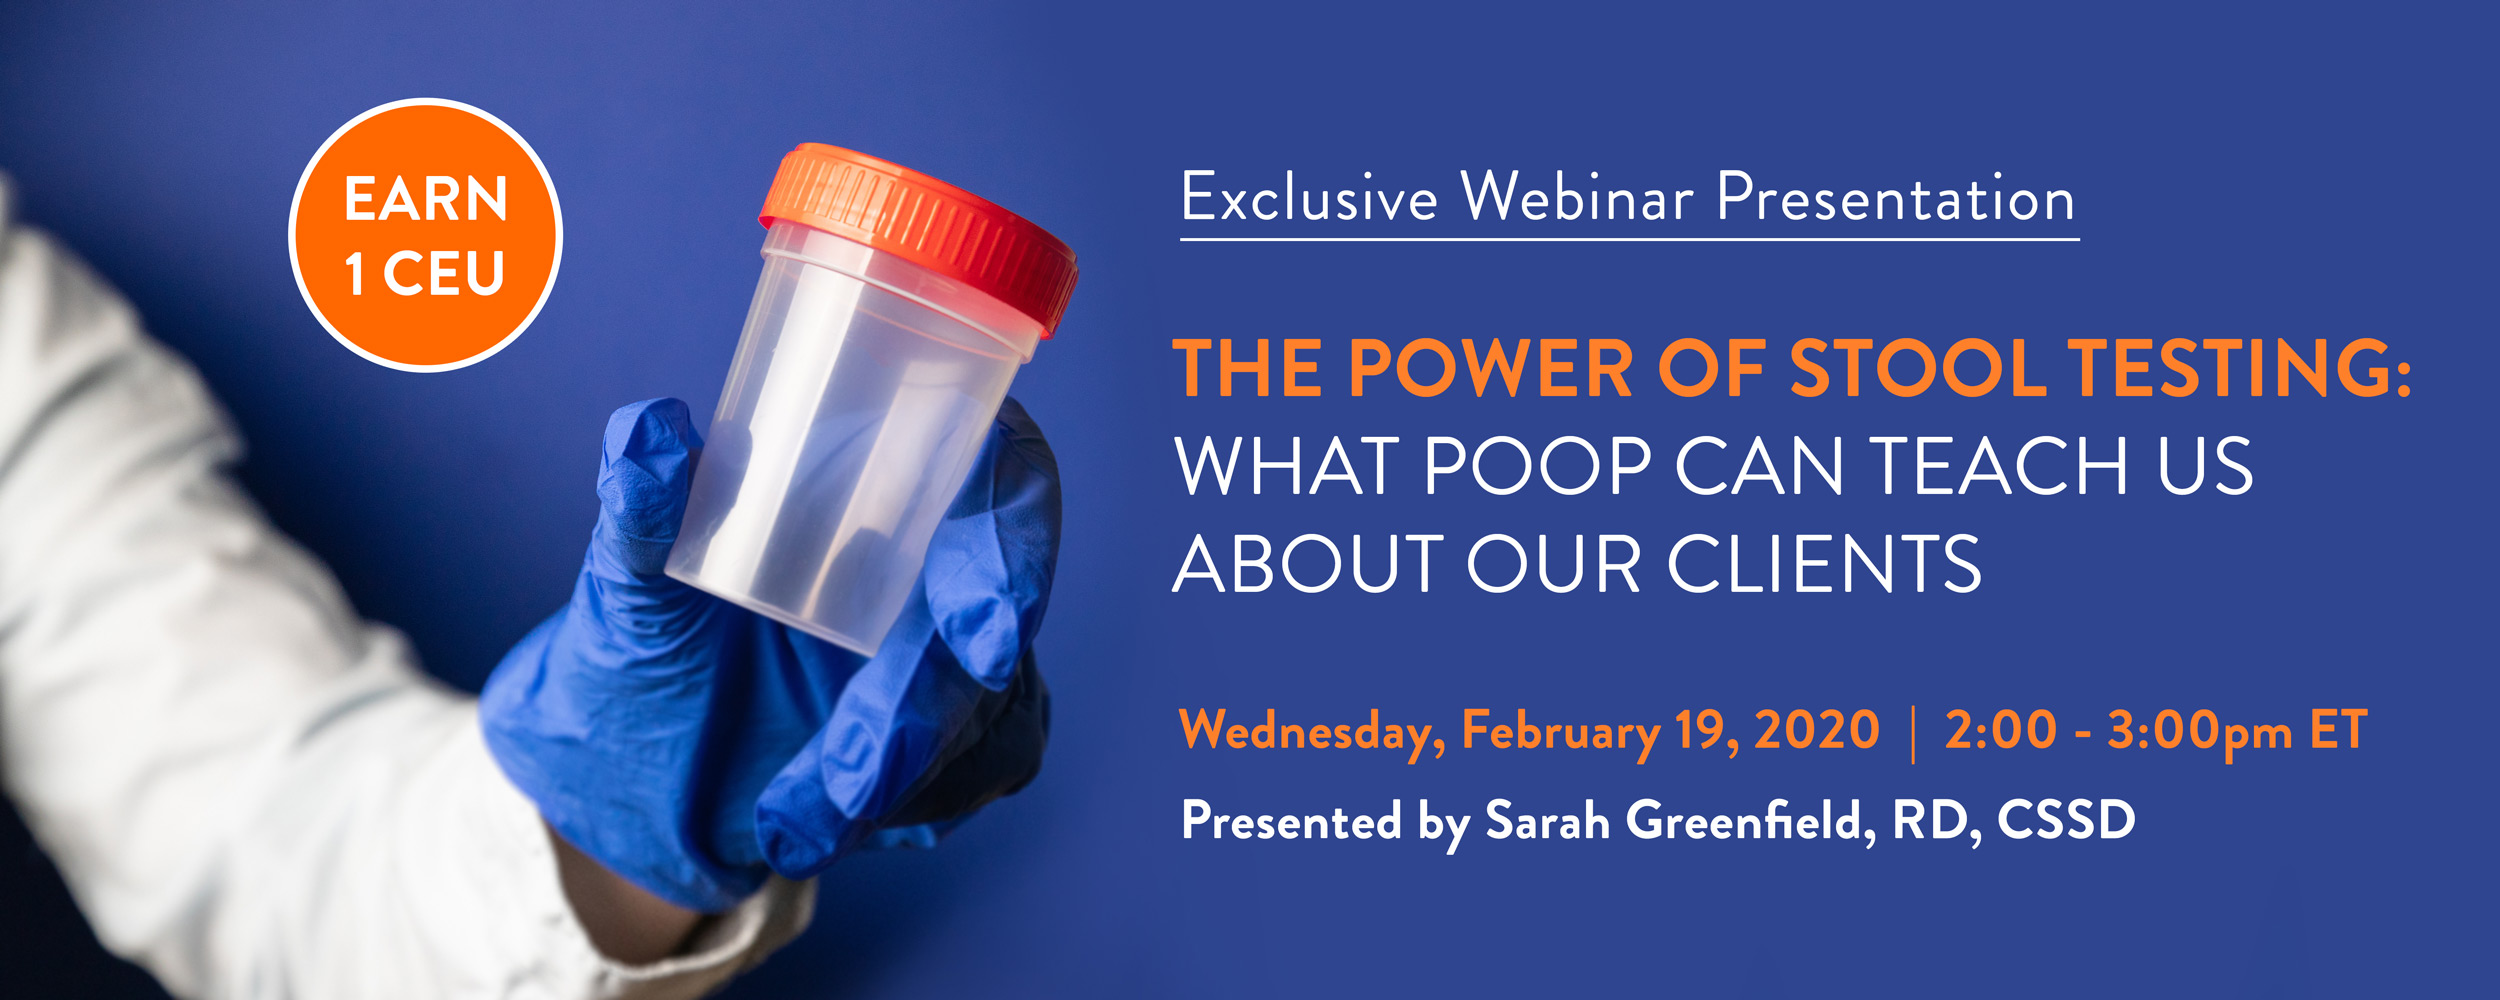 Exclusive Webinar Presentation | The Power of Stool Testing: What Poop Can Teach Us About Our Clients | Wednesday, February 19, 2020 | 2-3 PM EST | Presented by Sarah Greenfield, RD, CSSD | Earn 1 CEU